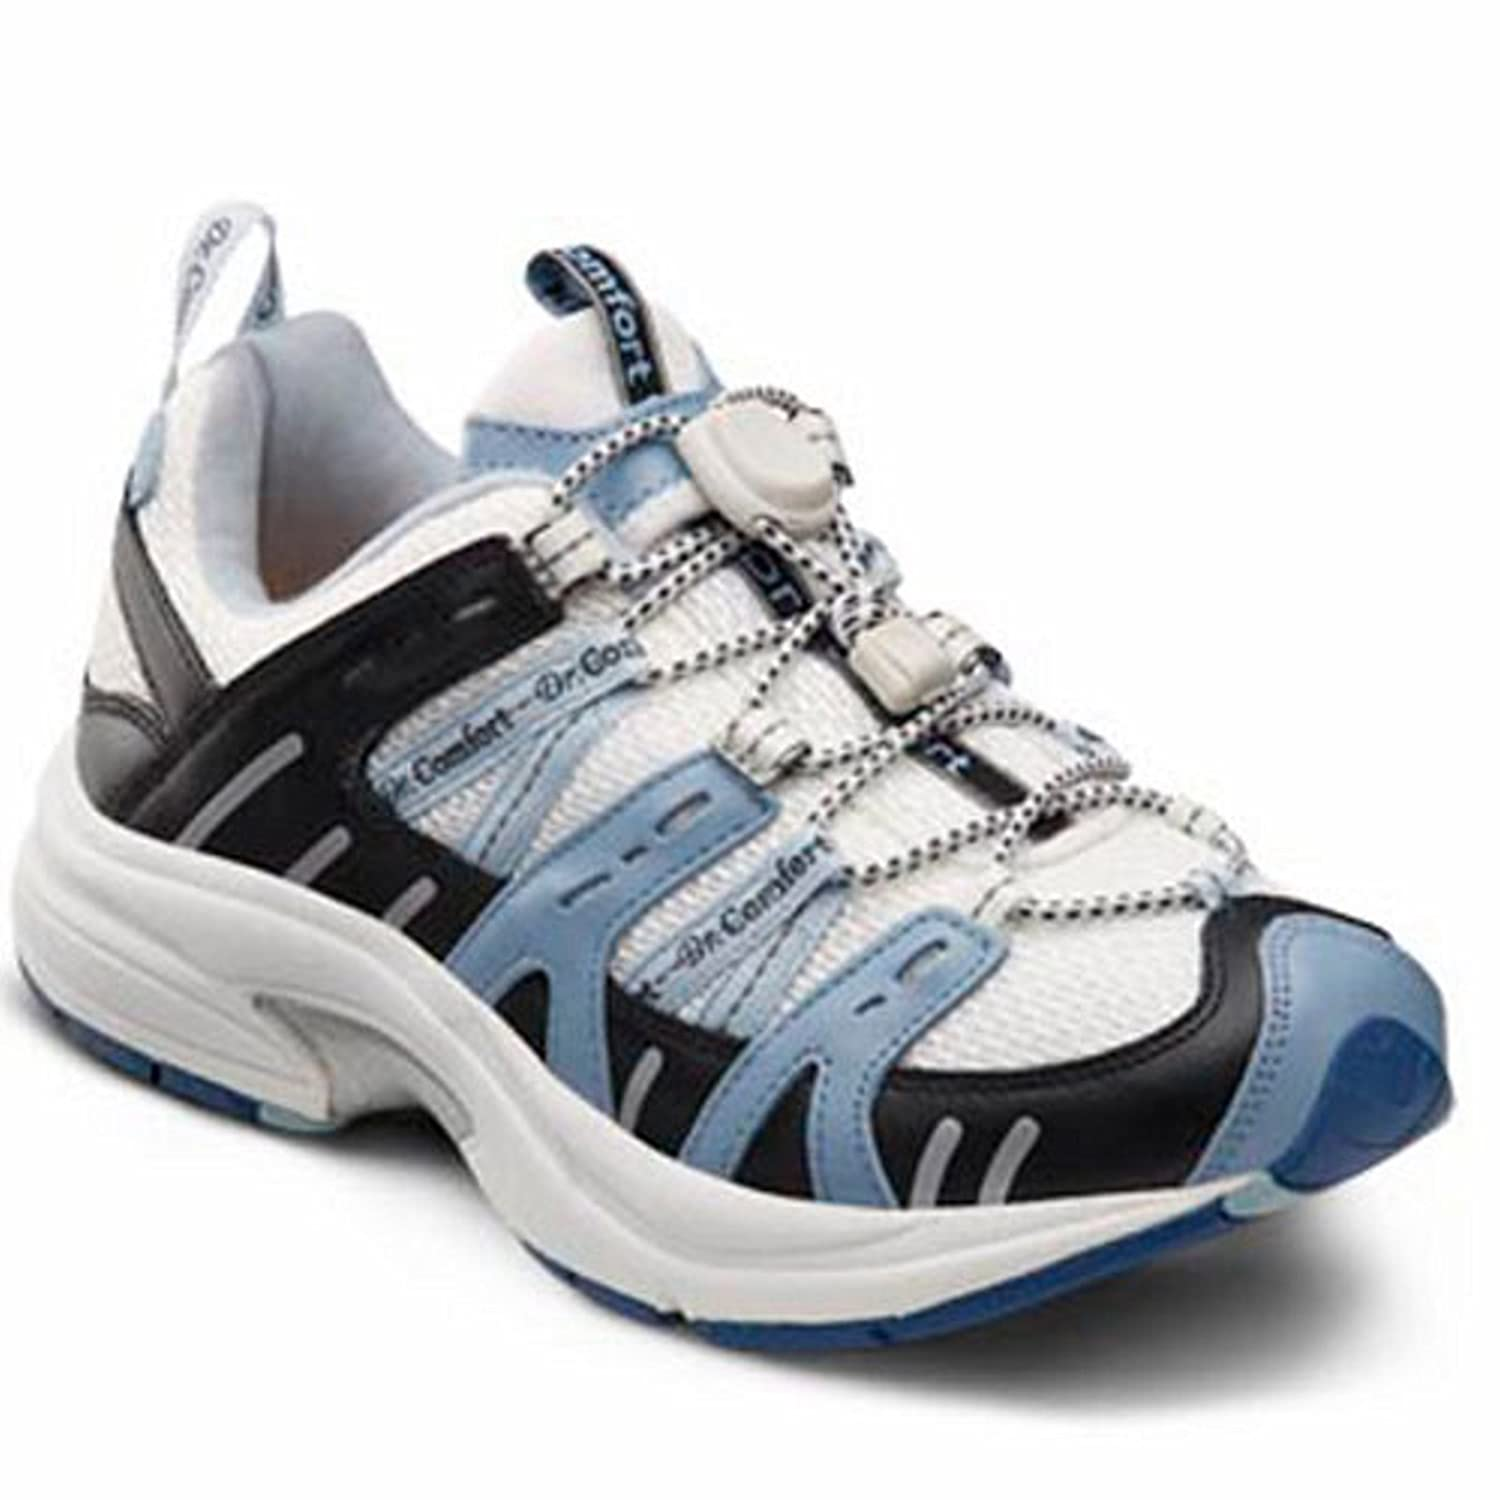 Dr. Comfort Women's Refresh X Blue Diabetic Athletic Shoes B00IO6GE5W -6.0 X-Wide (XW/4E) White/Blue Lace US Woman|White and Blue